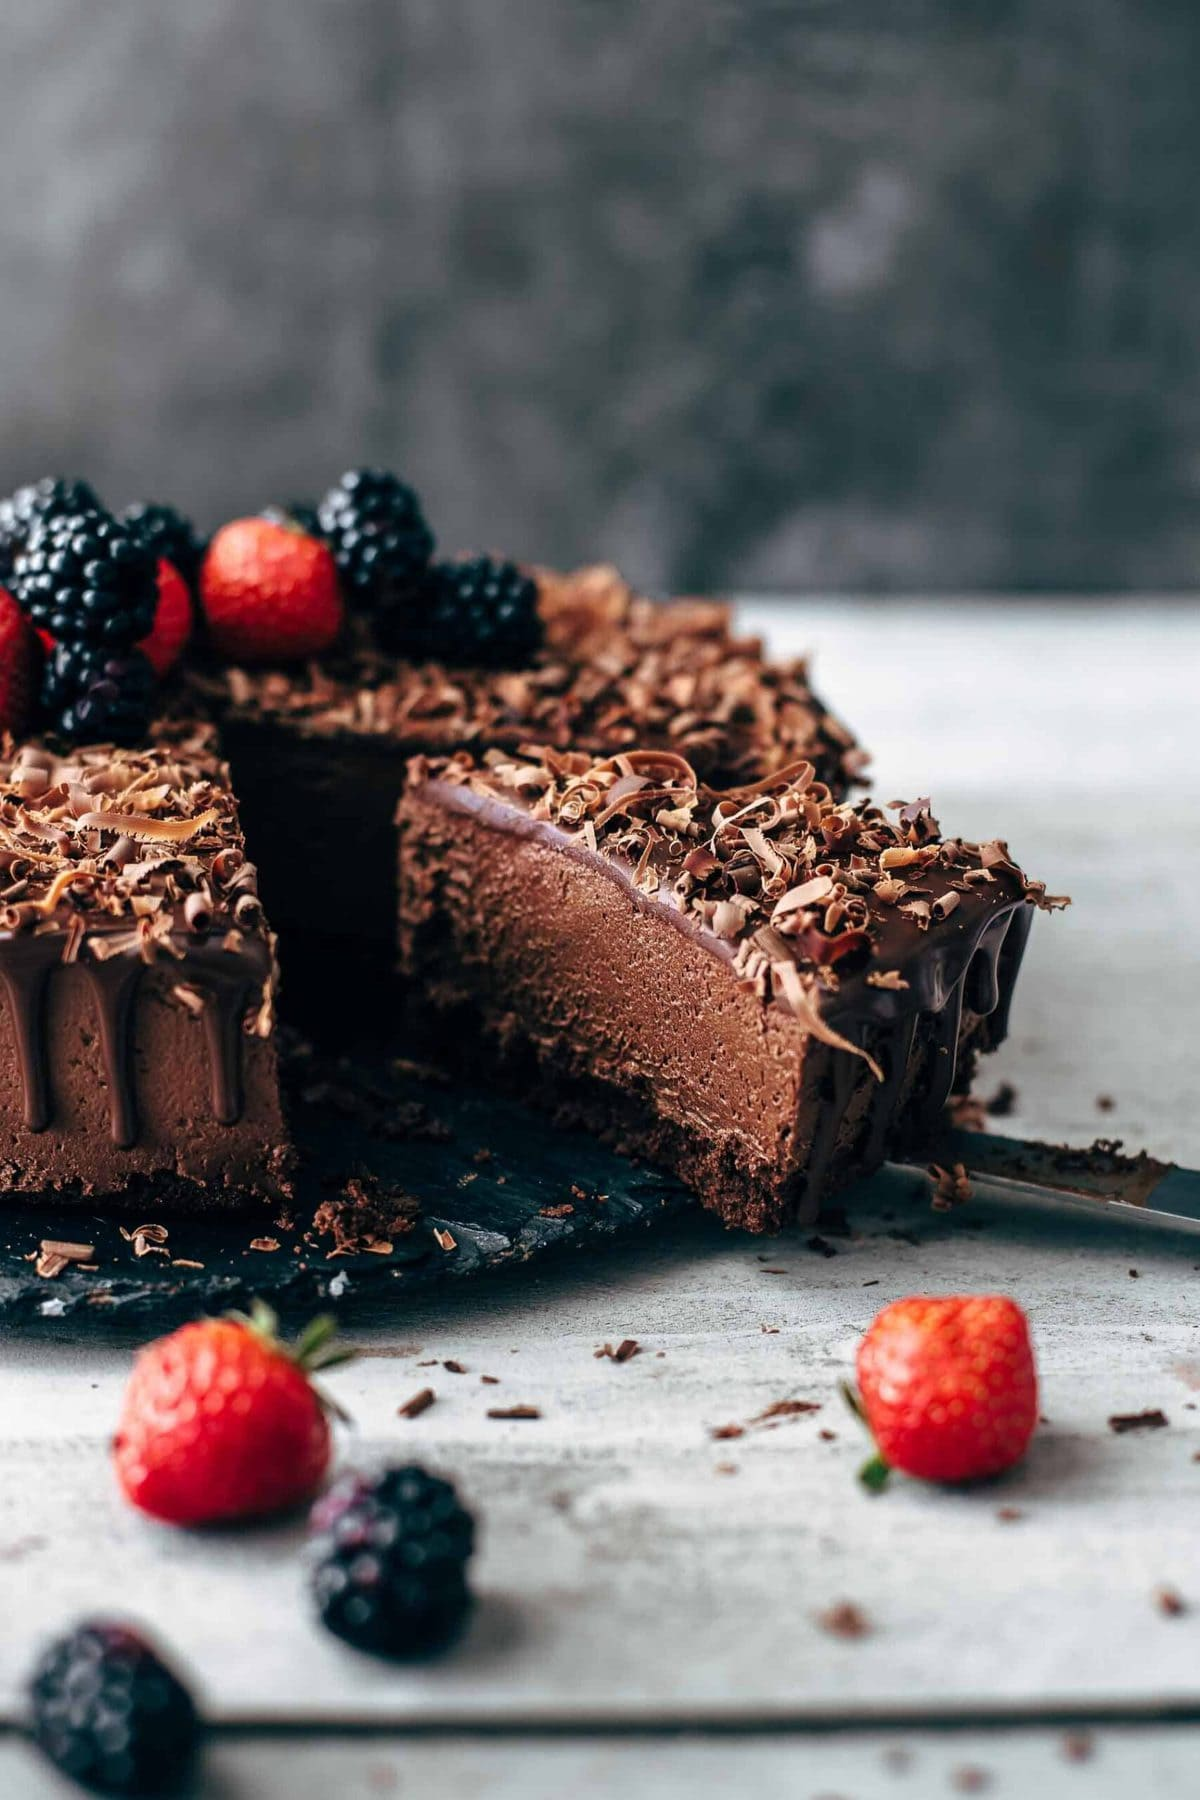 A slice of chocolate mousse cake with berries on top.